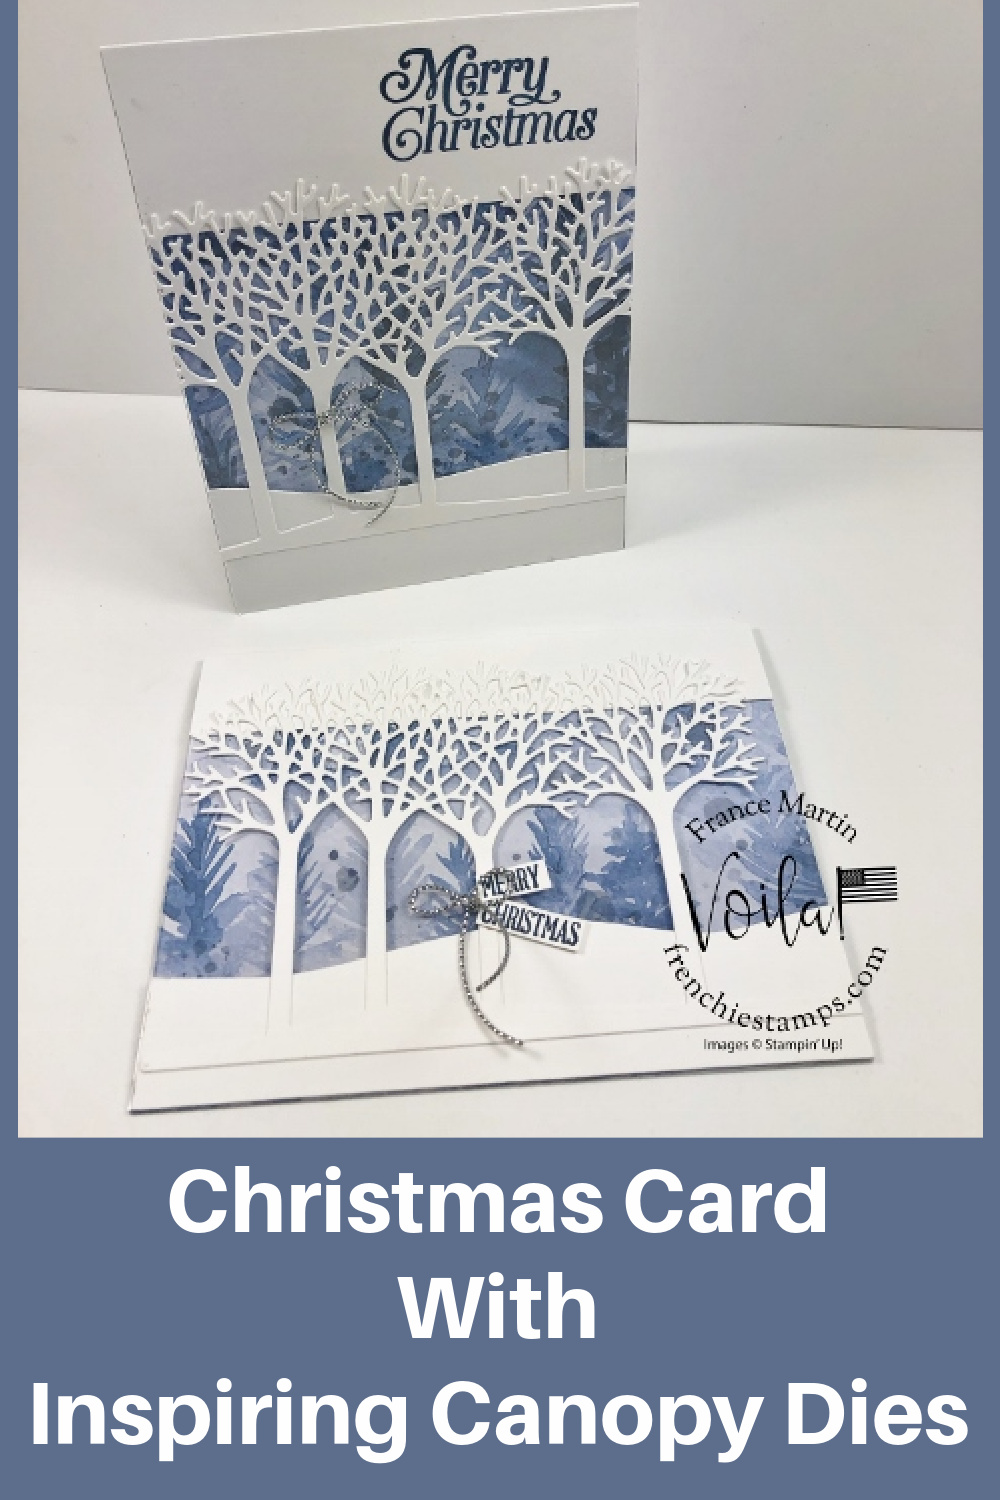 Christmas Card With Inspiring Canopy Dies